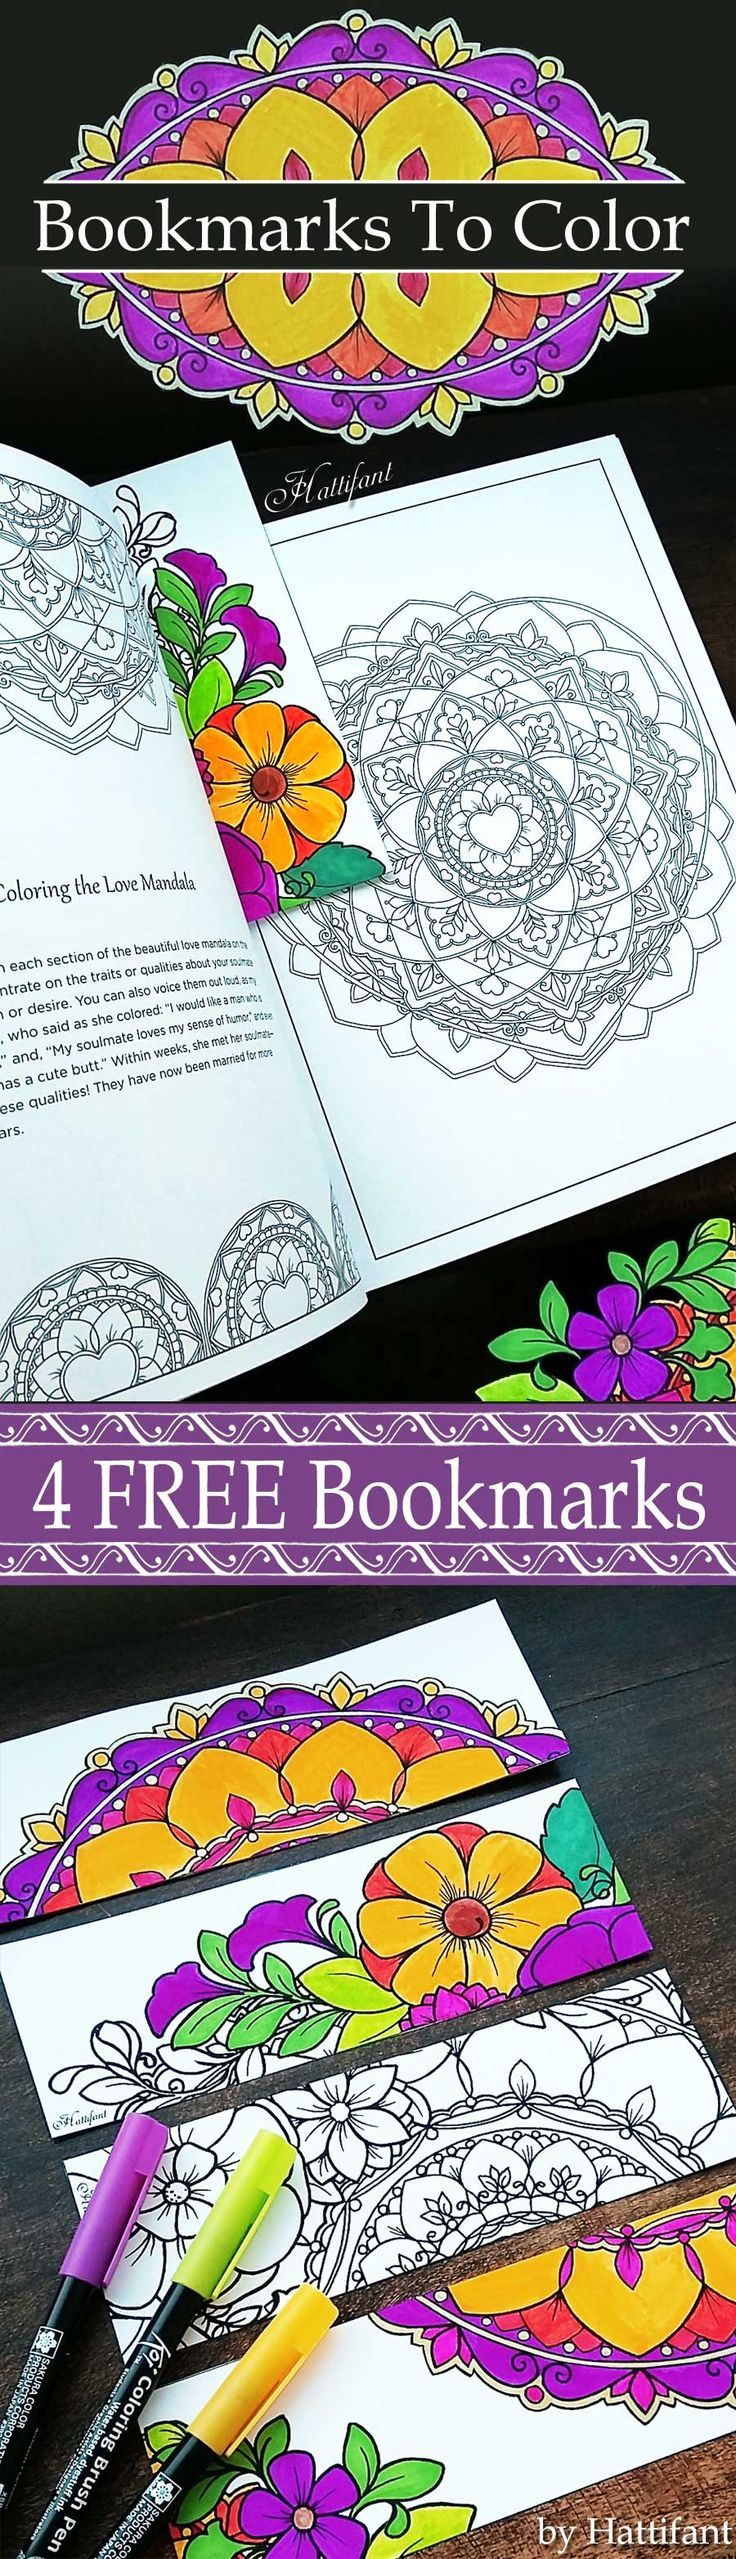 best trina images on pinterest marque page printable bookmarks